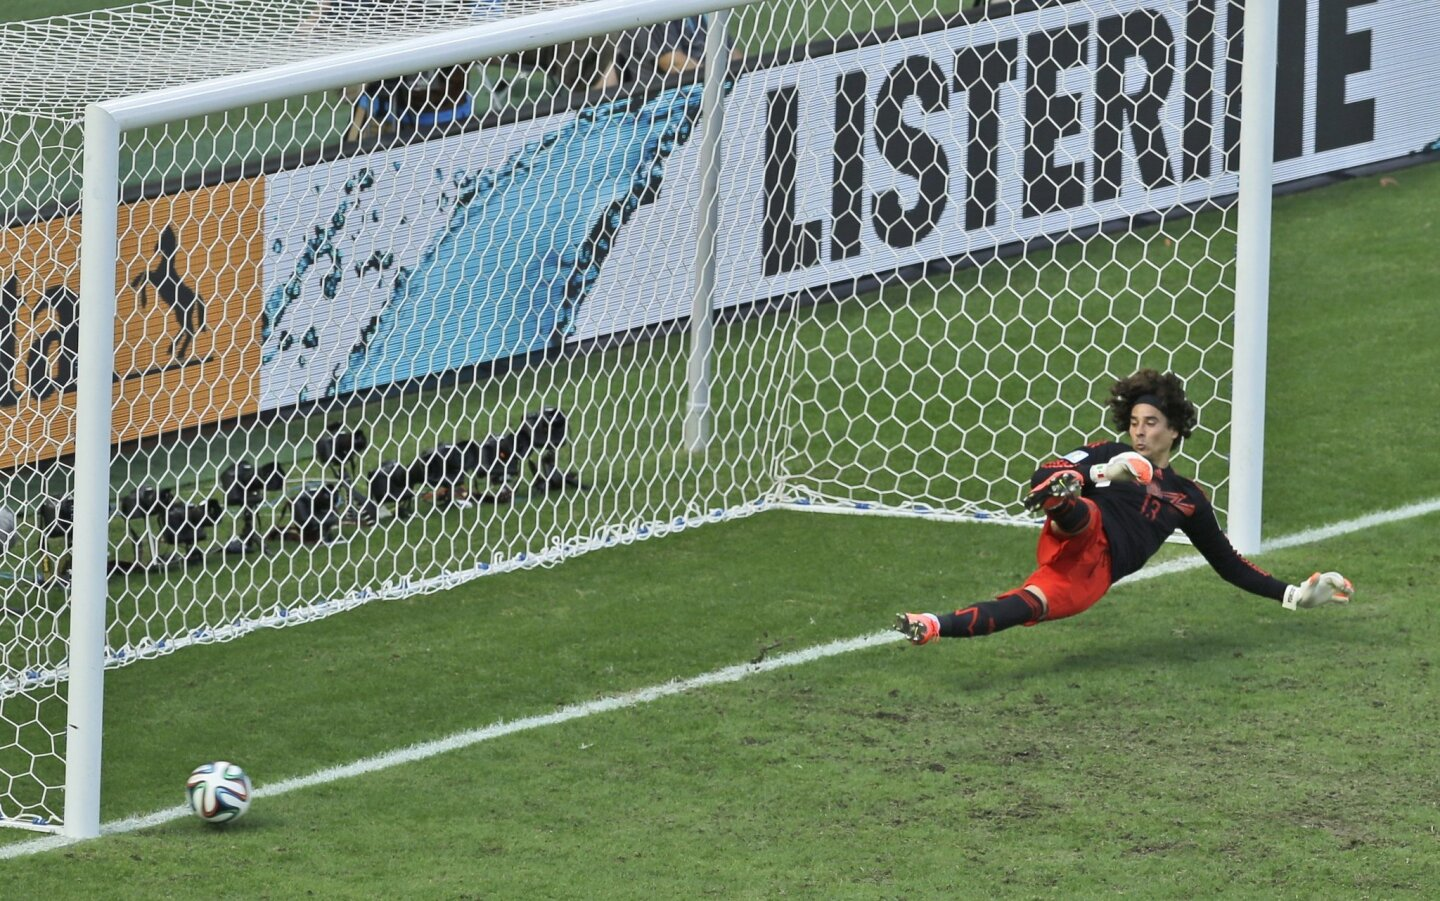 Mexico's goalkeeper Guillermo Ochoa fails to save a shot by Netherlands' Klaas-Jan Huntelaar from the penalty spot during the World Cup round of 16 soccer match between the Netherlands and Mexico at the Arena Castelao in Fortaleza, Brazil, Sunday, June 29, 2014. Holland won 2-1 and advanced to the